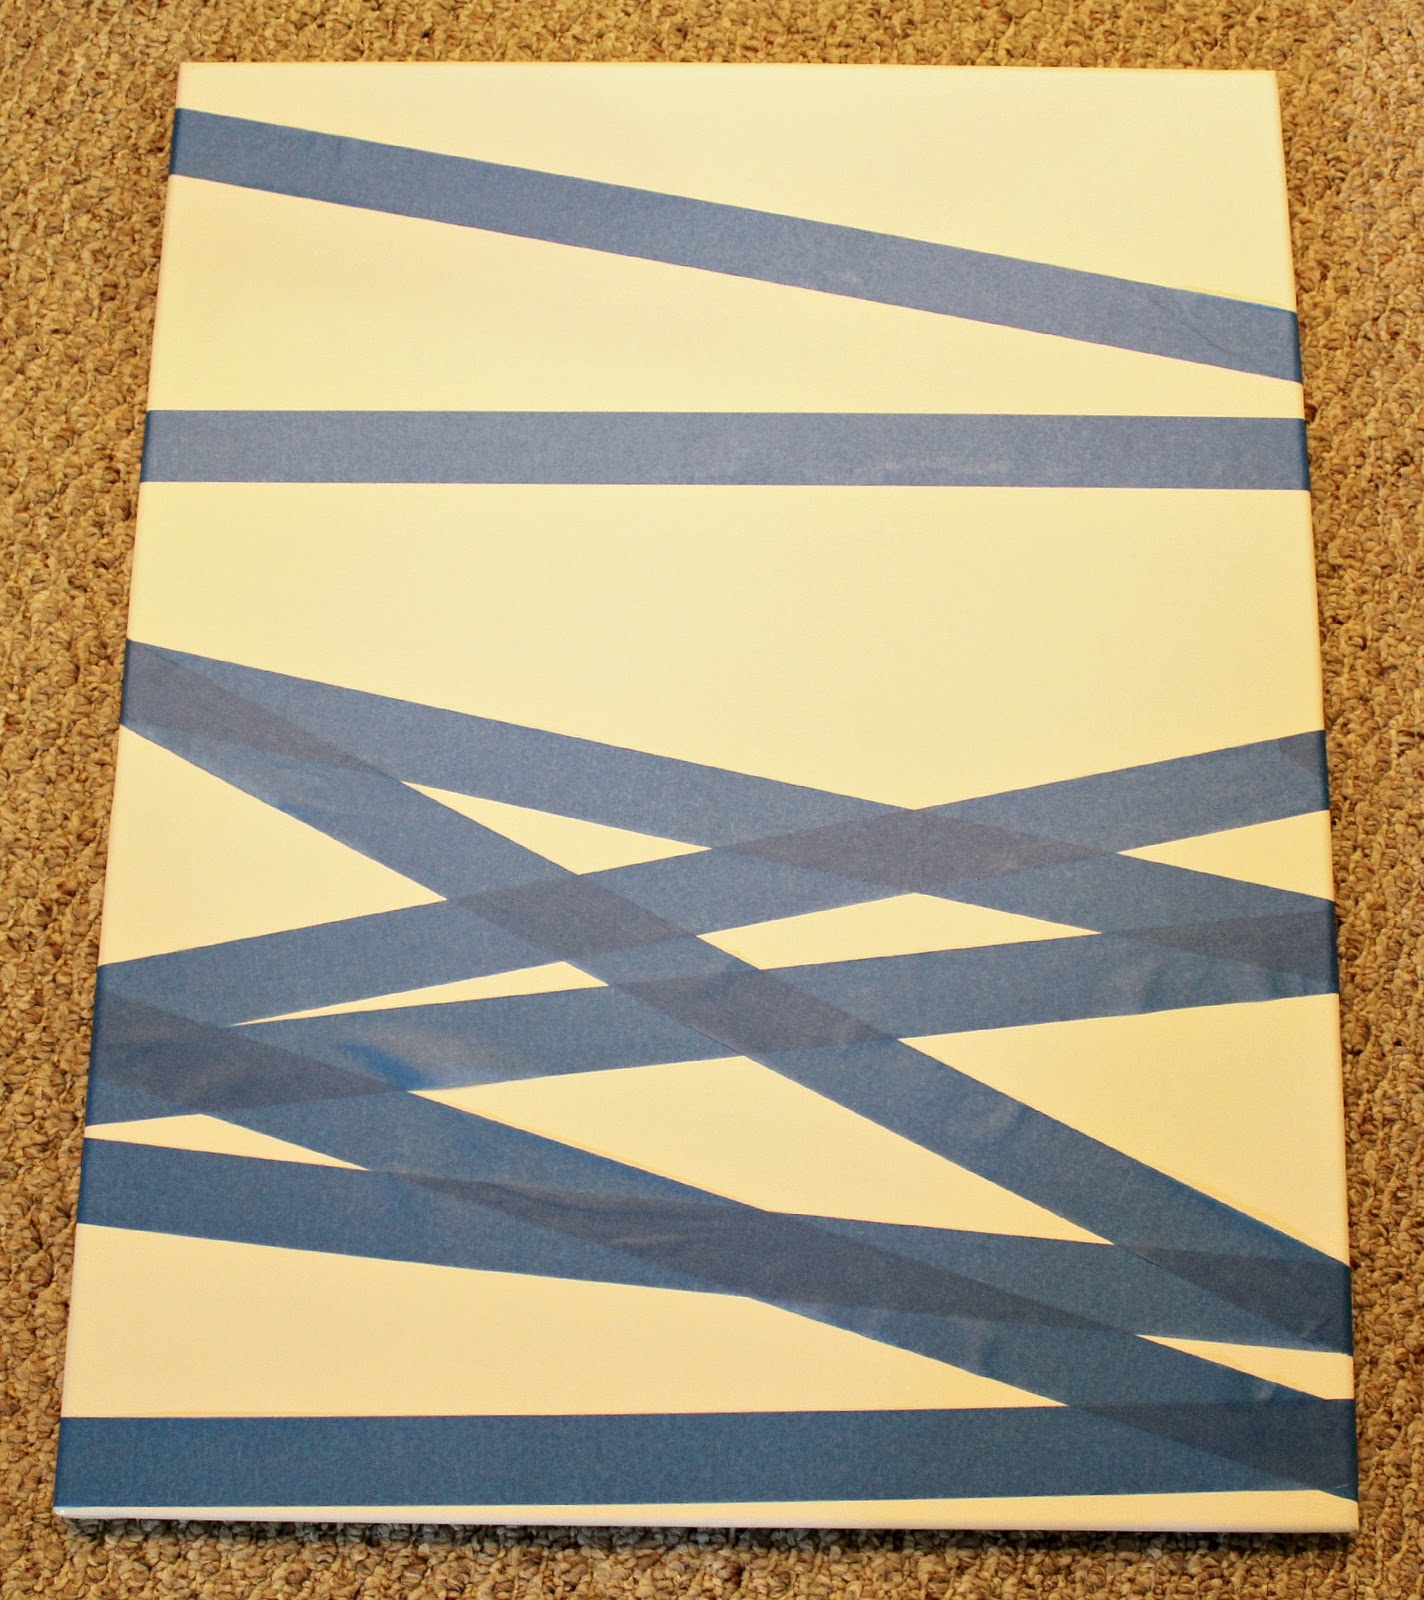 Ten June: Painters Tape Abstract Art & ScotchBlue Painting ...